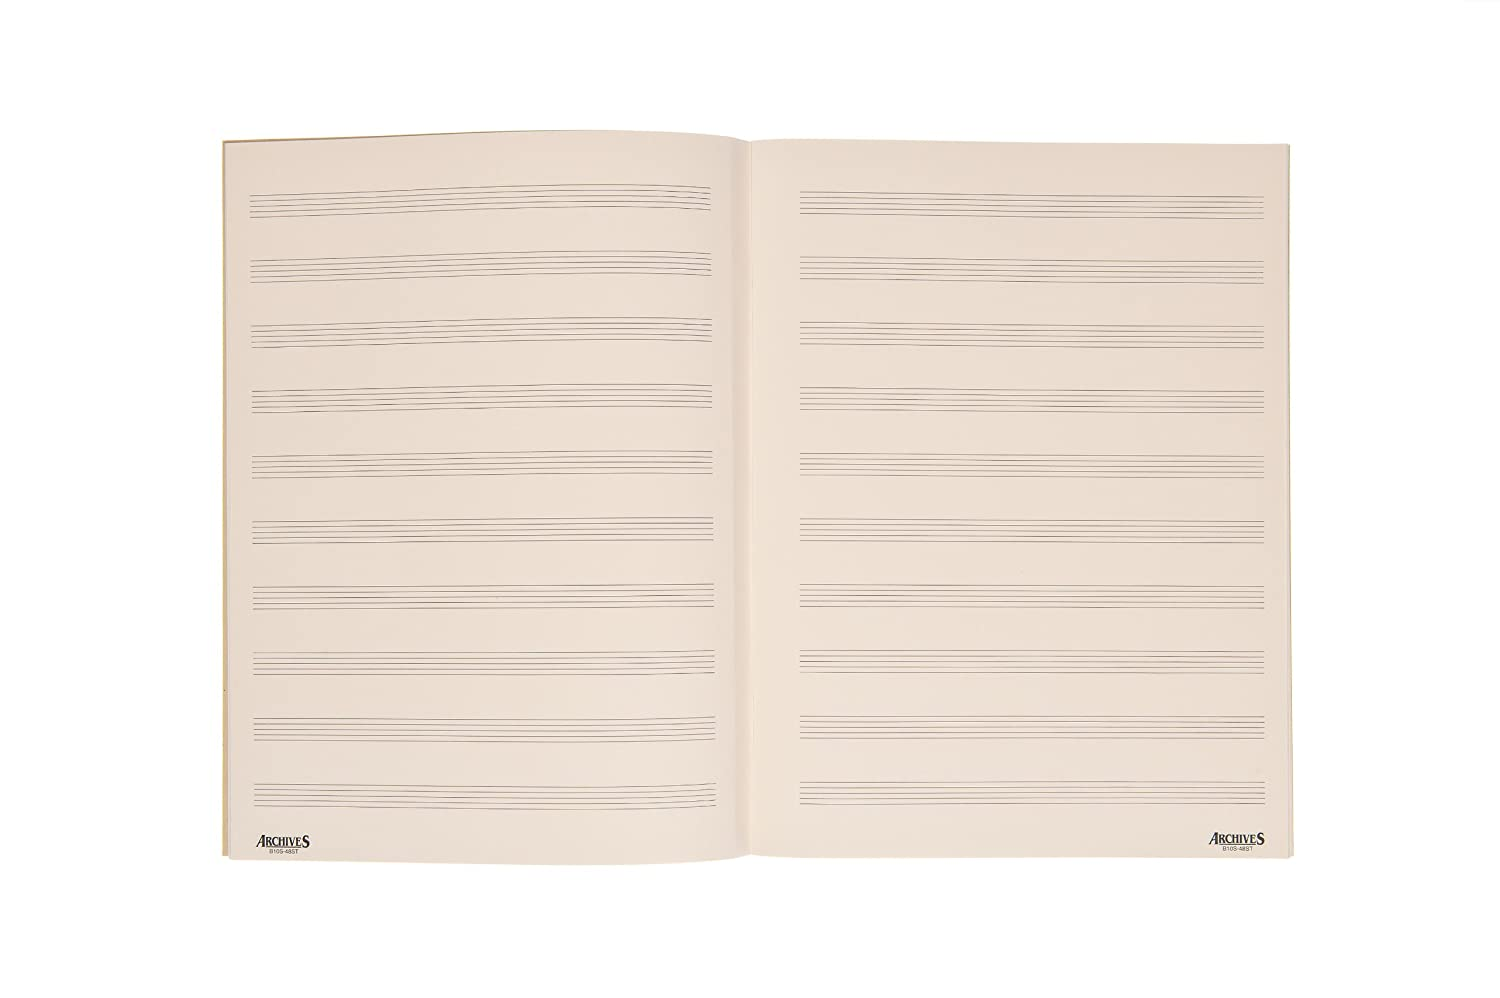 Archives Spiral Bound Manuscript Paper Book, 10 Stave, 96 Pages D'Addario &Co. Inc B10S-96